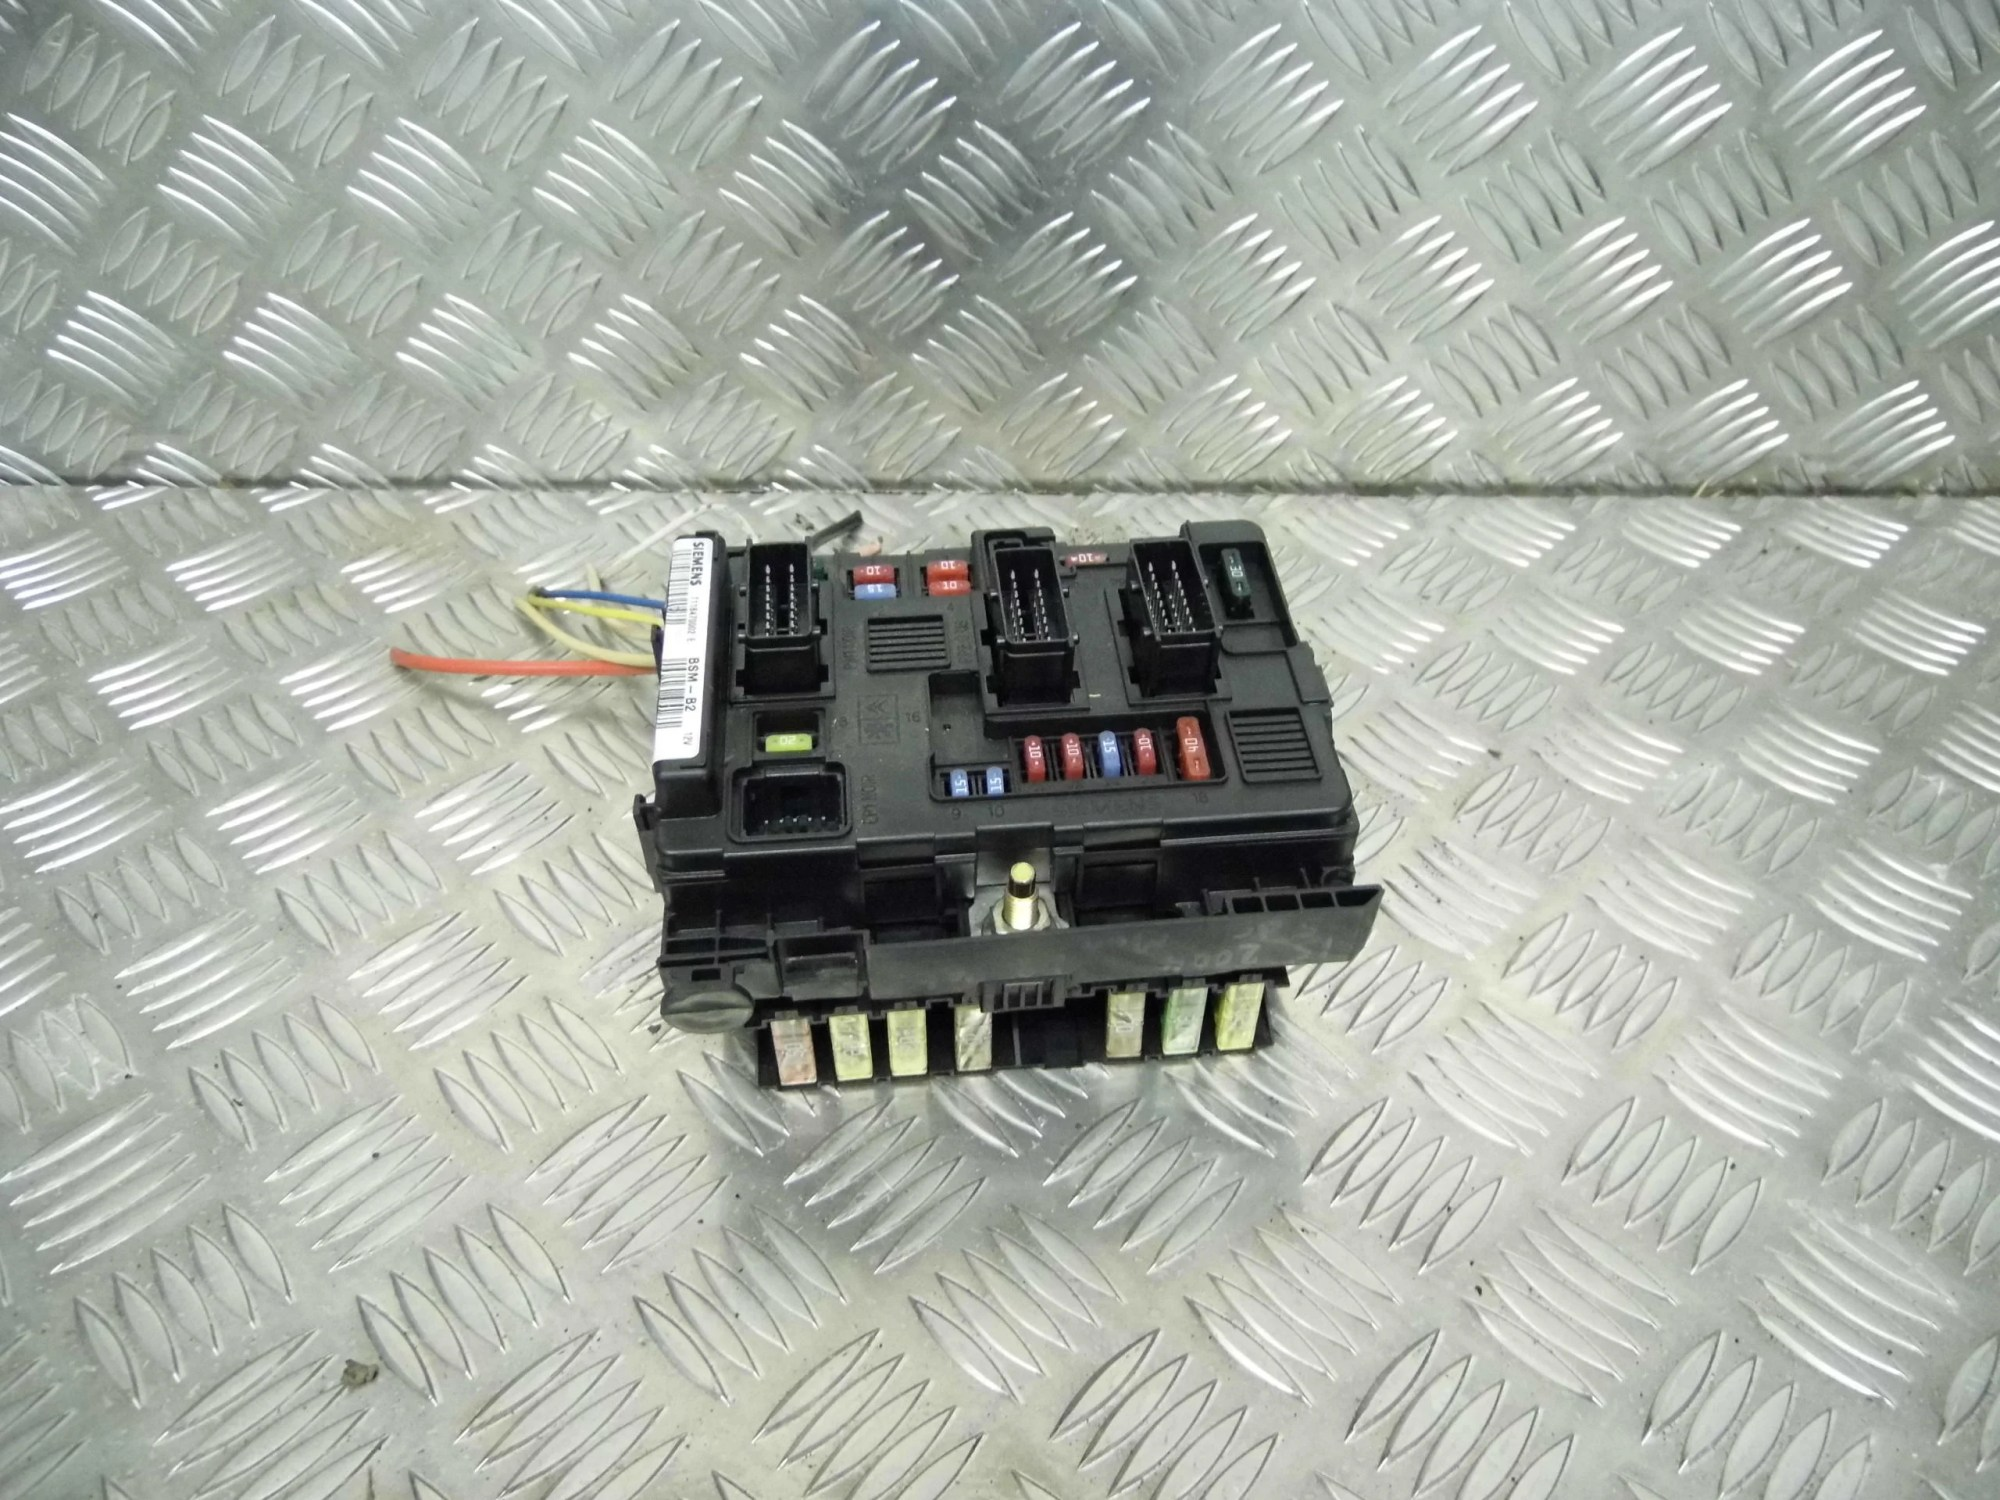 hight resolution of 2004 peugeot 206 hatchback under bonnet fuse box front view